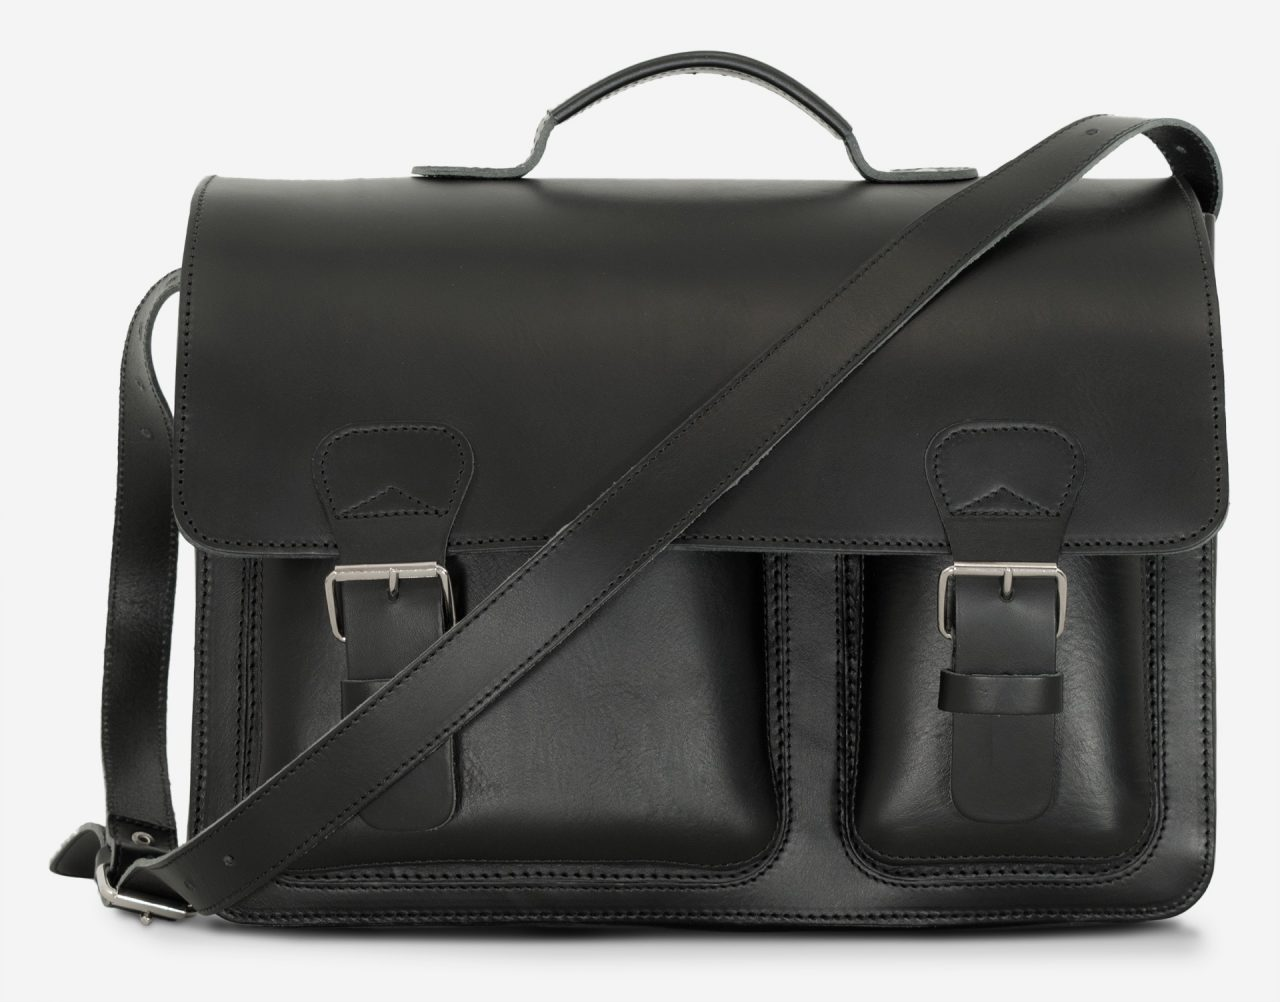 Front view of large black leather briefcase with 3 compartments and asymmetric front pockets 112142.